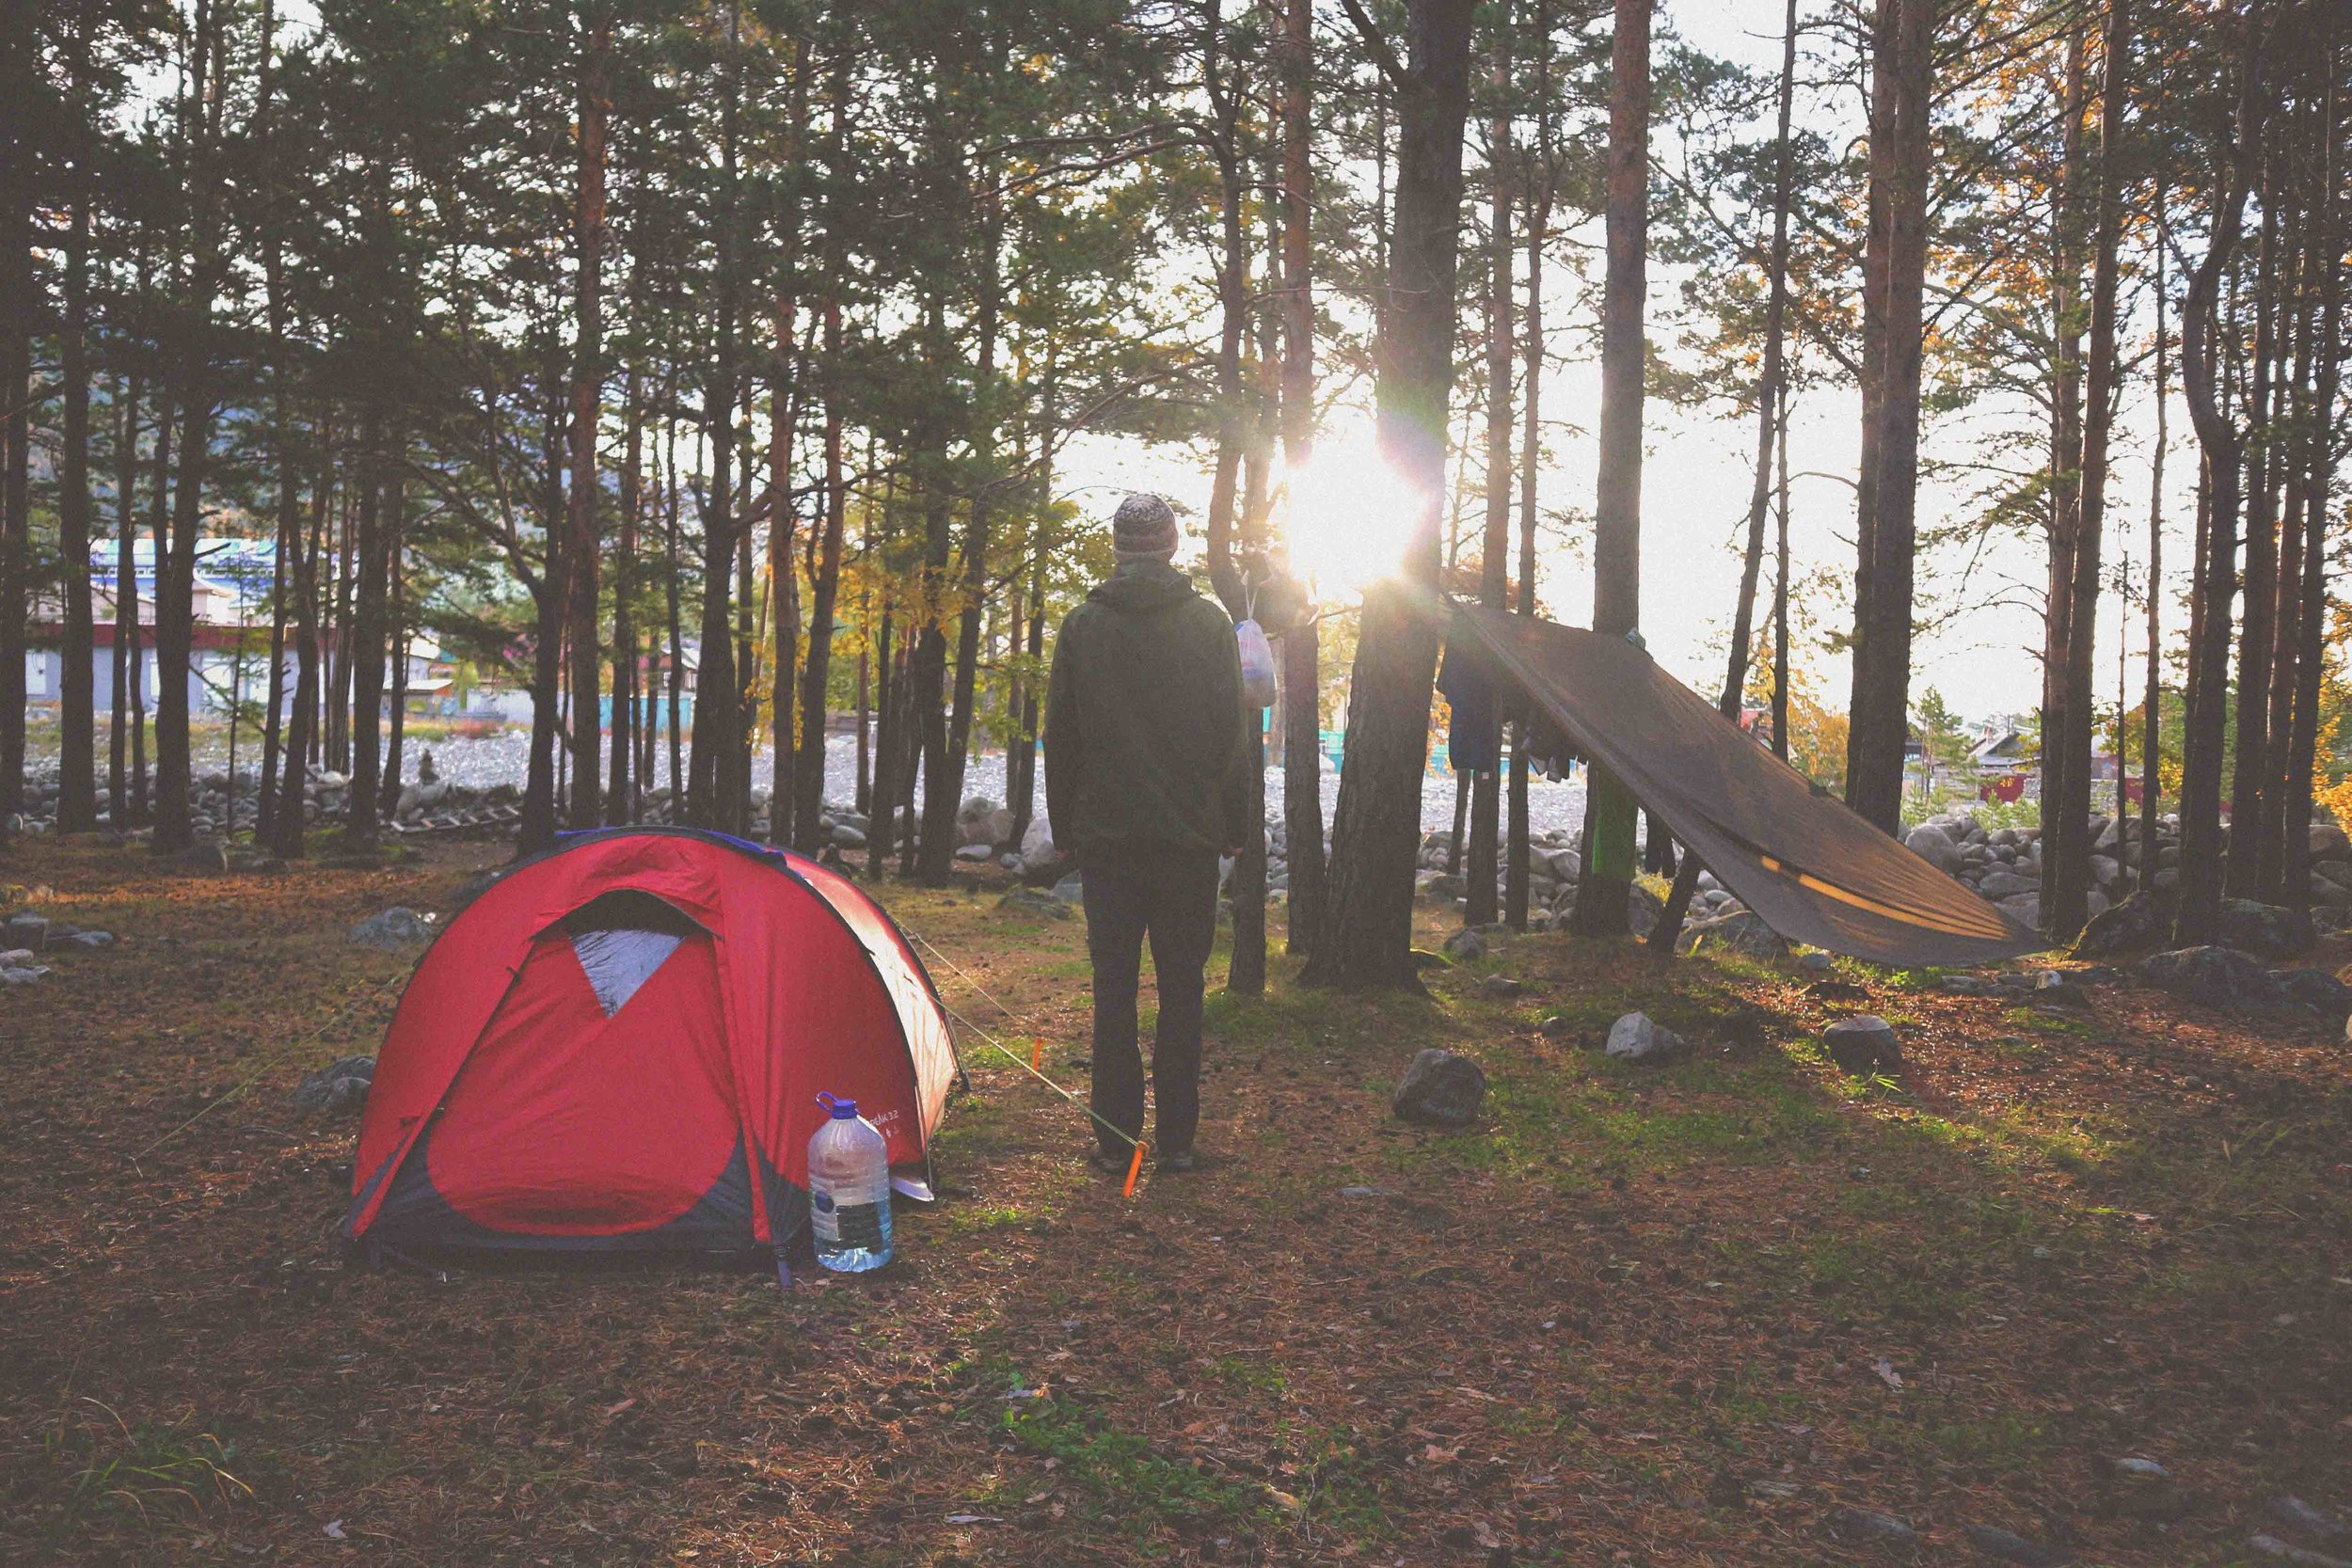 The joys of camping;waking up in the fresh outdoors in the middle of nature. by Studio Mali